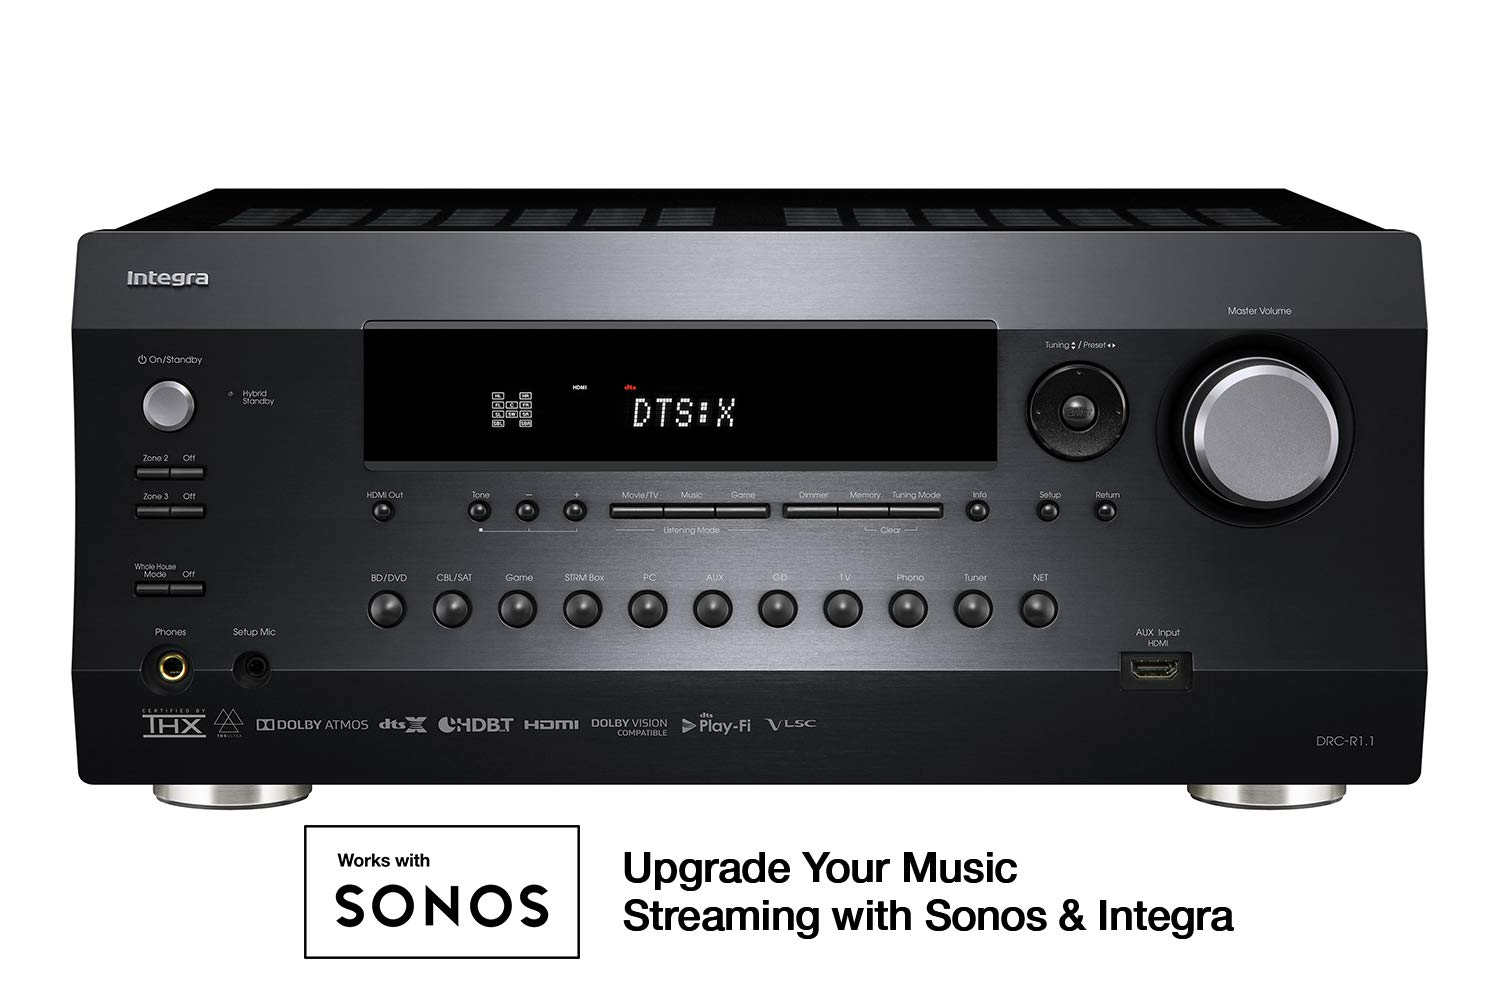 Integra DRC-R1.1 Research Series 11.2 Ch. Dolby Atmos & DTS:X Network A/V Preamp